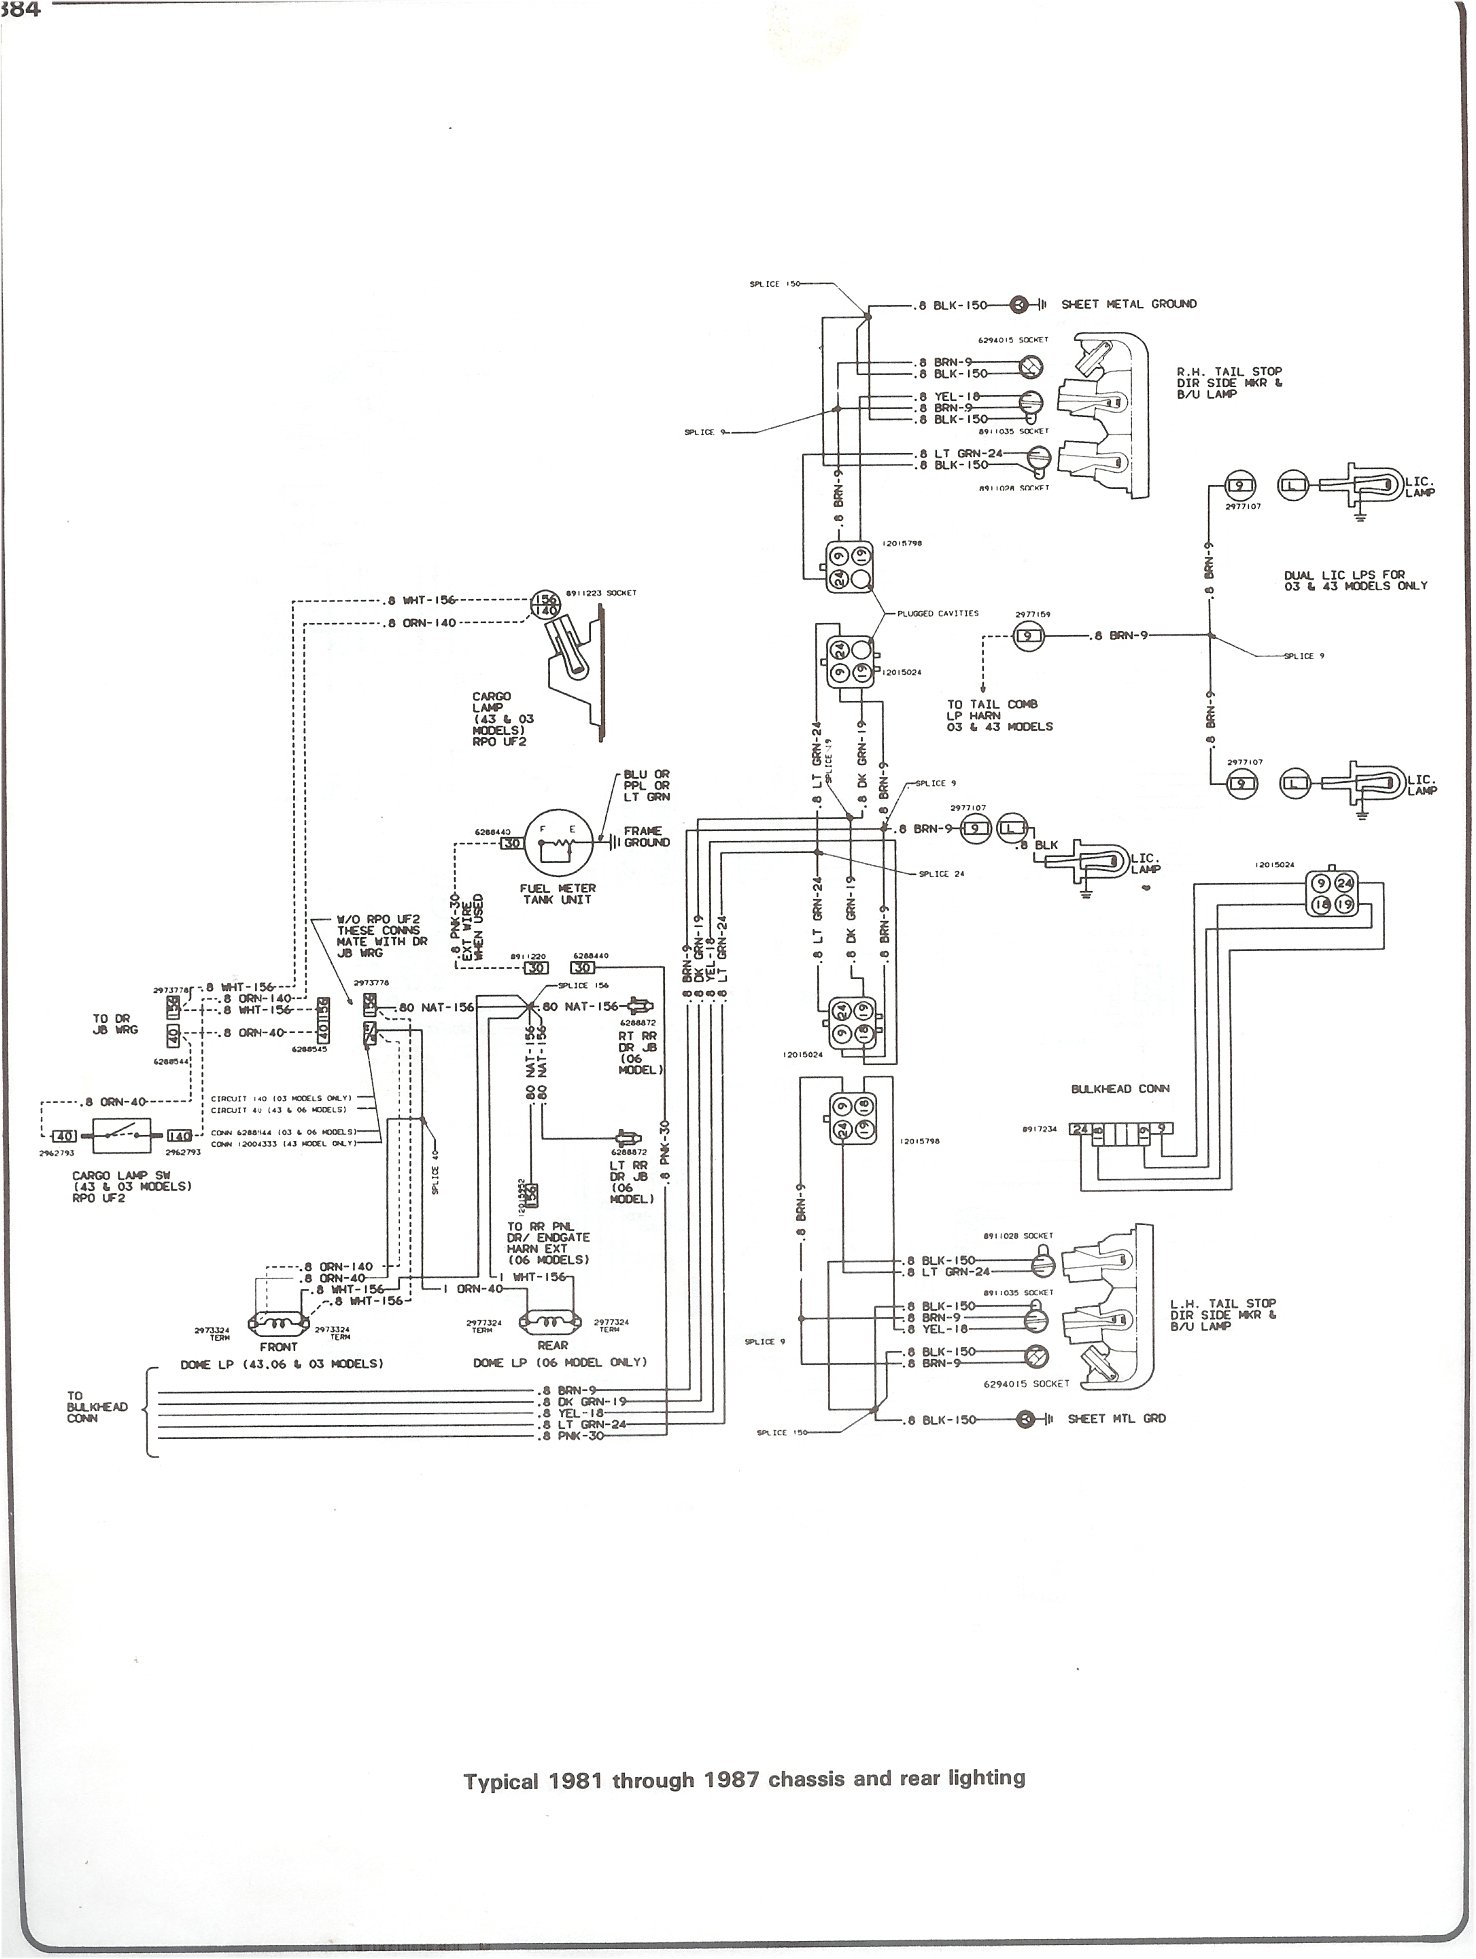 81 87_chass_rr_light complete 73 87 wiring diagrams tail light wiring diagram 1992 chevy truck at eliteediting.co